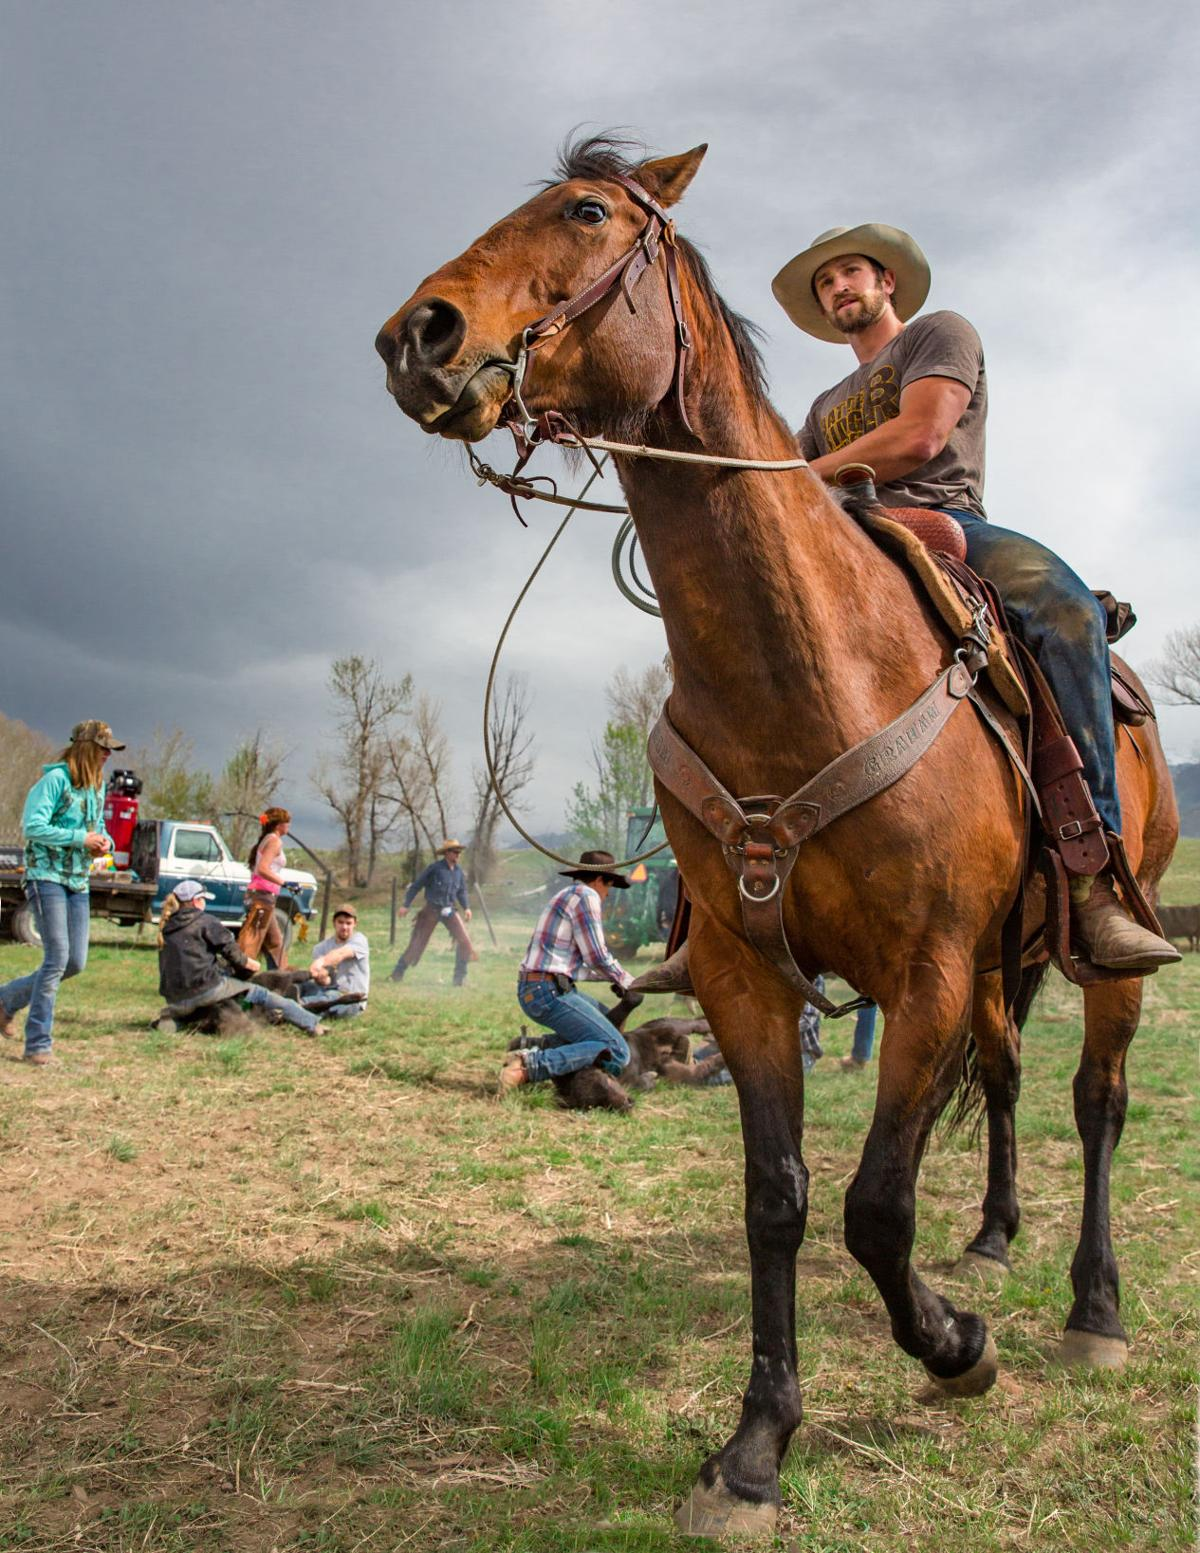 Montana blaine county hays - Photos Montana Cowboys And Cowgirls Montana News Billingsgazette Com